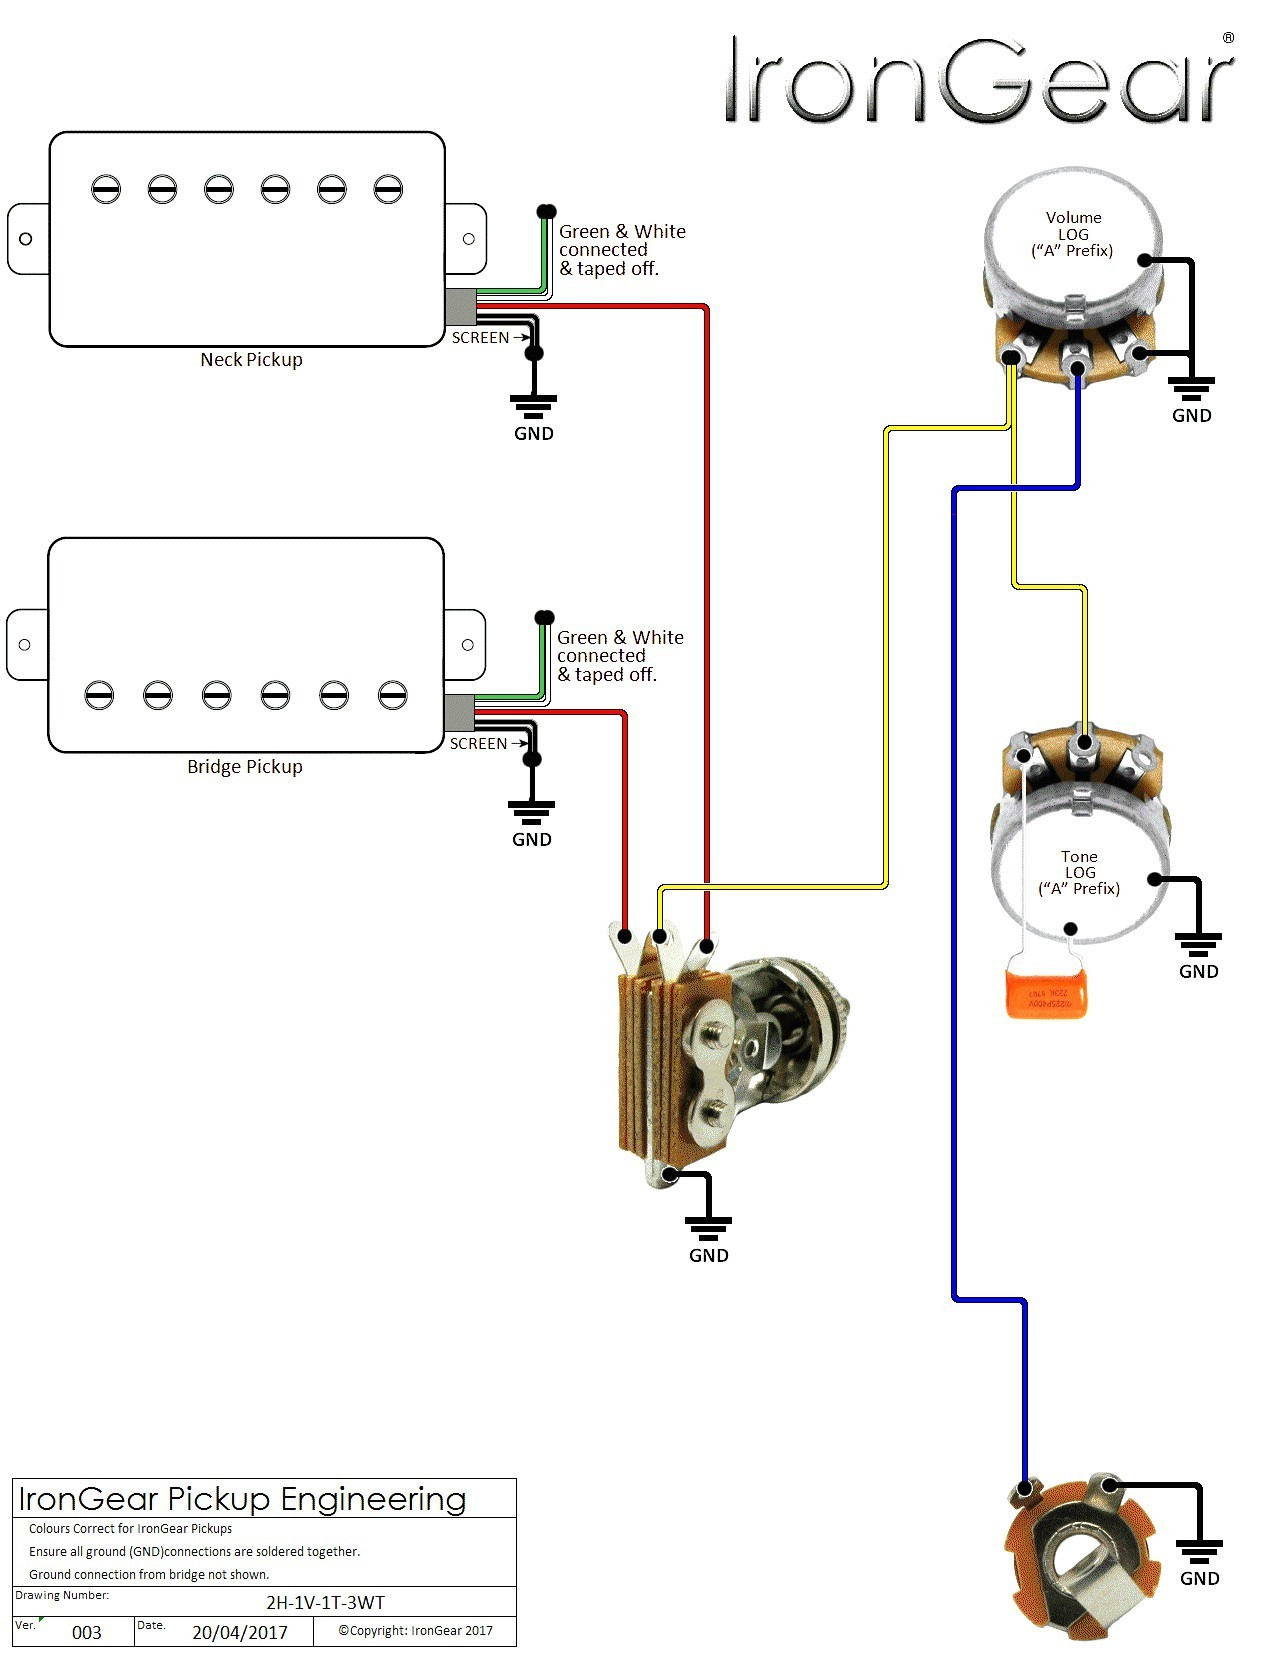 Washburn X Series Guitar Wiring Diagram - 96 Suburban Blower Motor Wiring  Diagram for Wiring Diagram SchematicsWiring Diagram Schematics